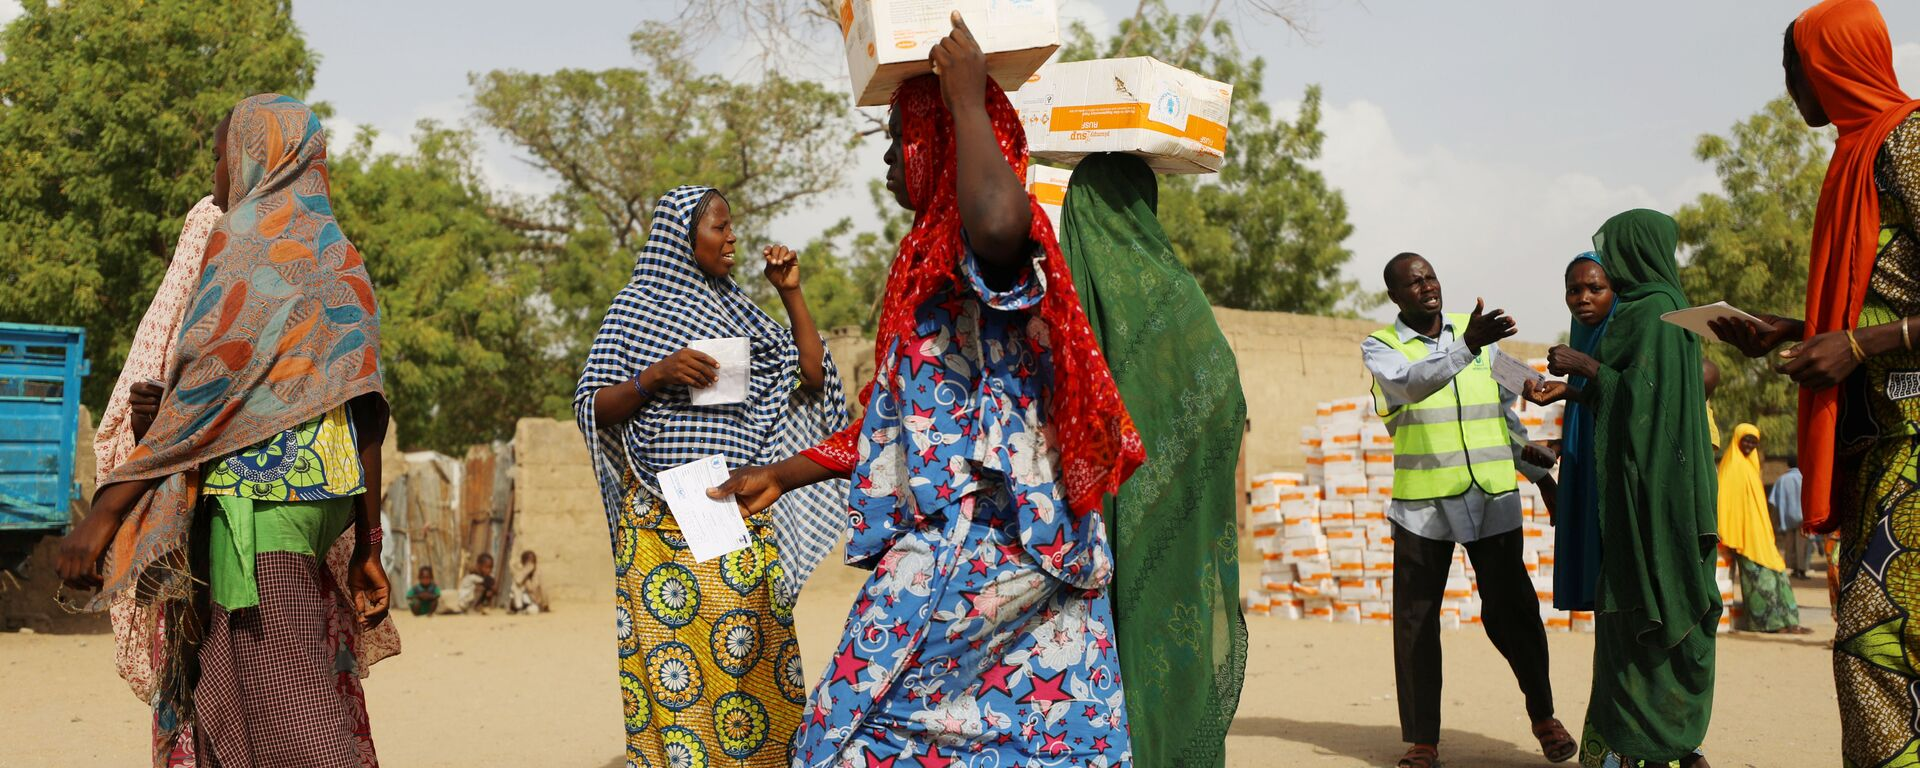 Women carry food supplement received from World Food Programme (WFP) at the Banki IDP camp, in Borno, Nigeria April 26, 2017 - Sputnik Italia, 1920, 05.05.2021